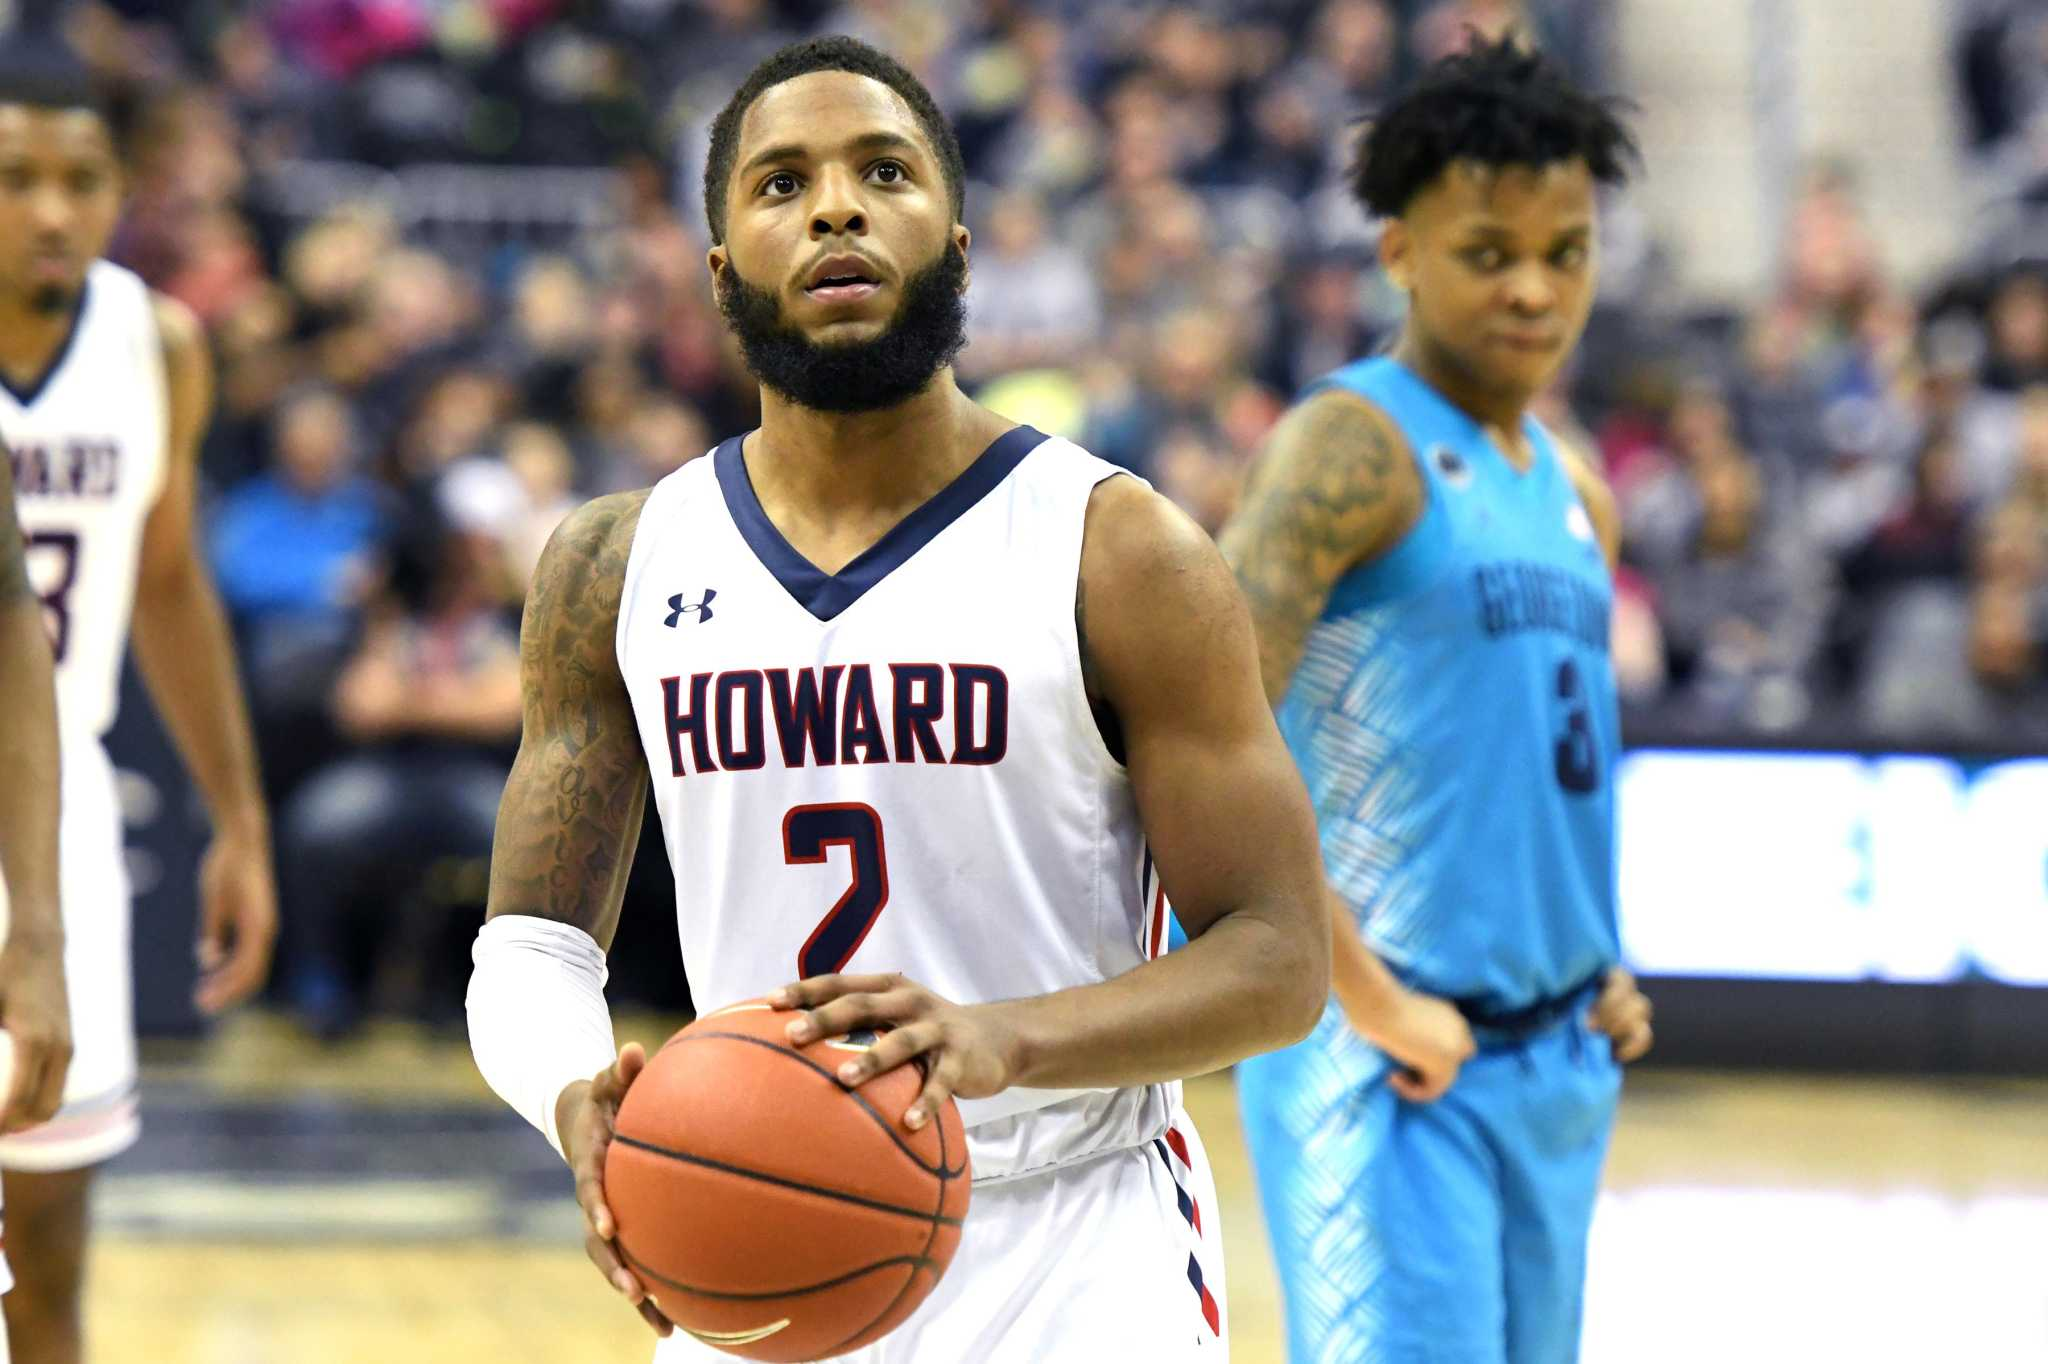 RJ Cole reminds Bob Hurley Sr. of another left-handed, high-scoring point guard he once coached